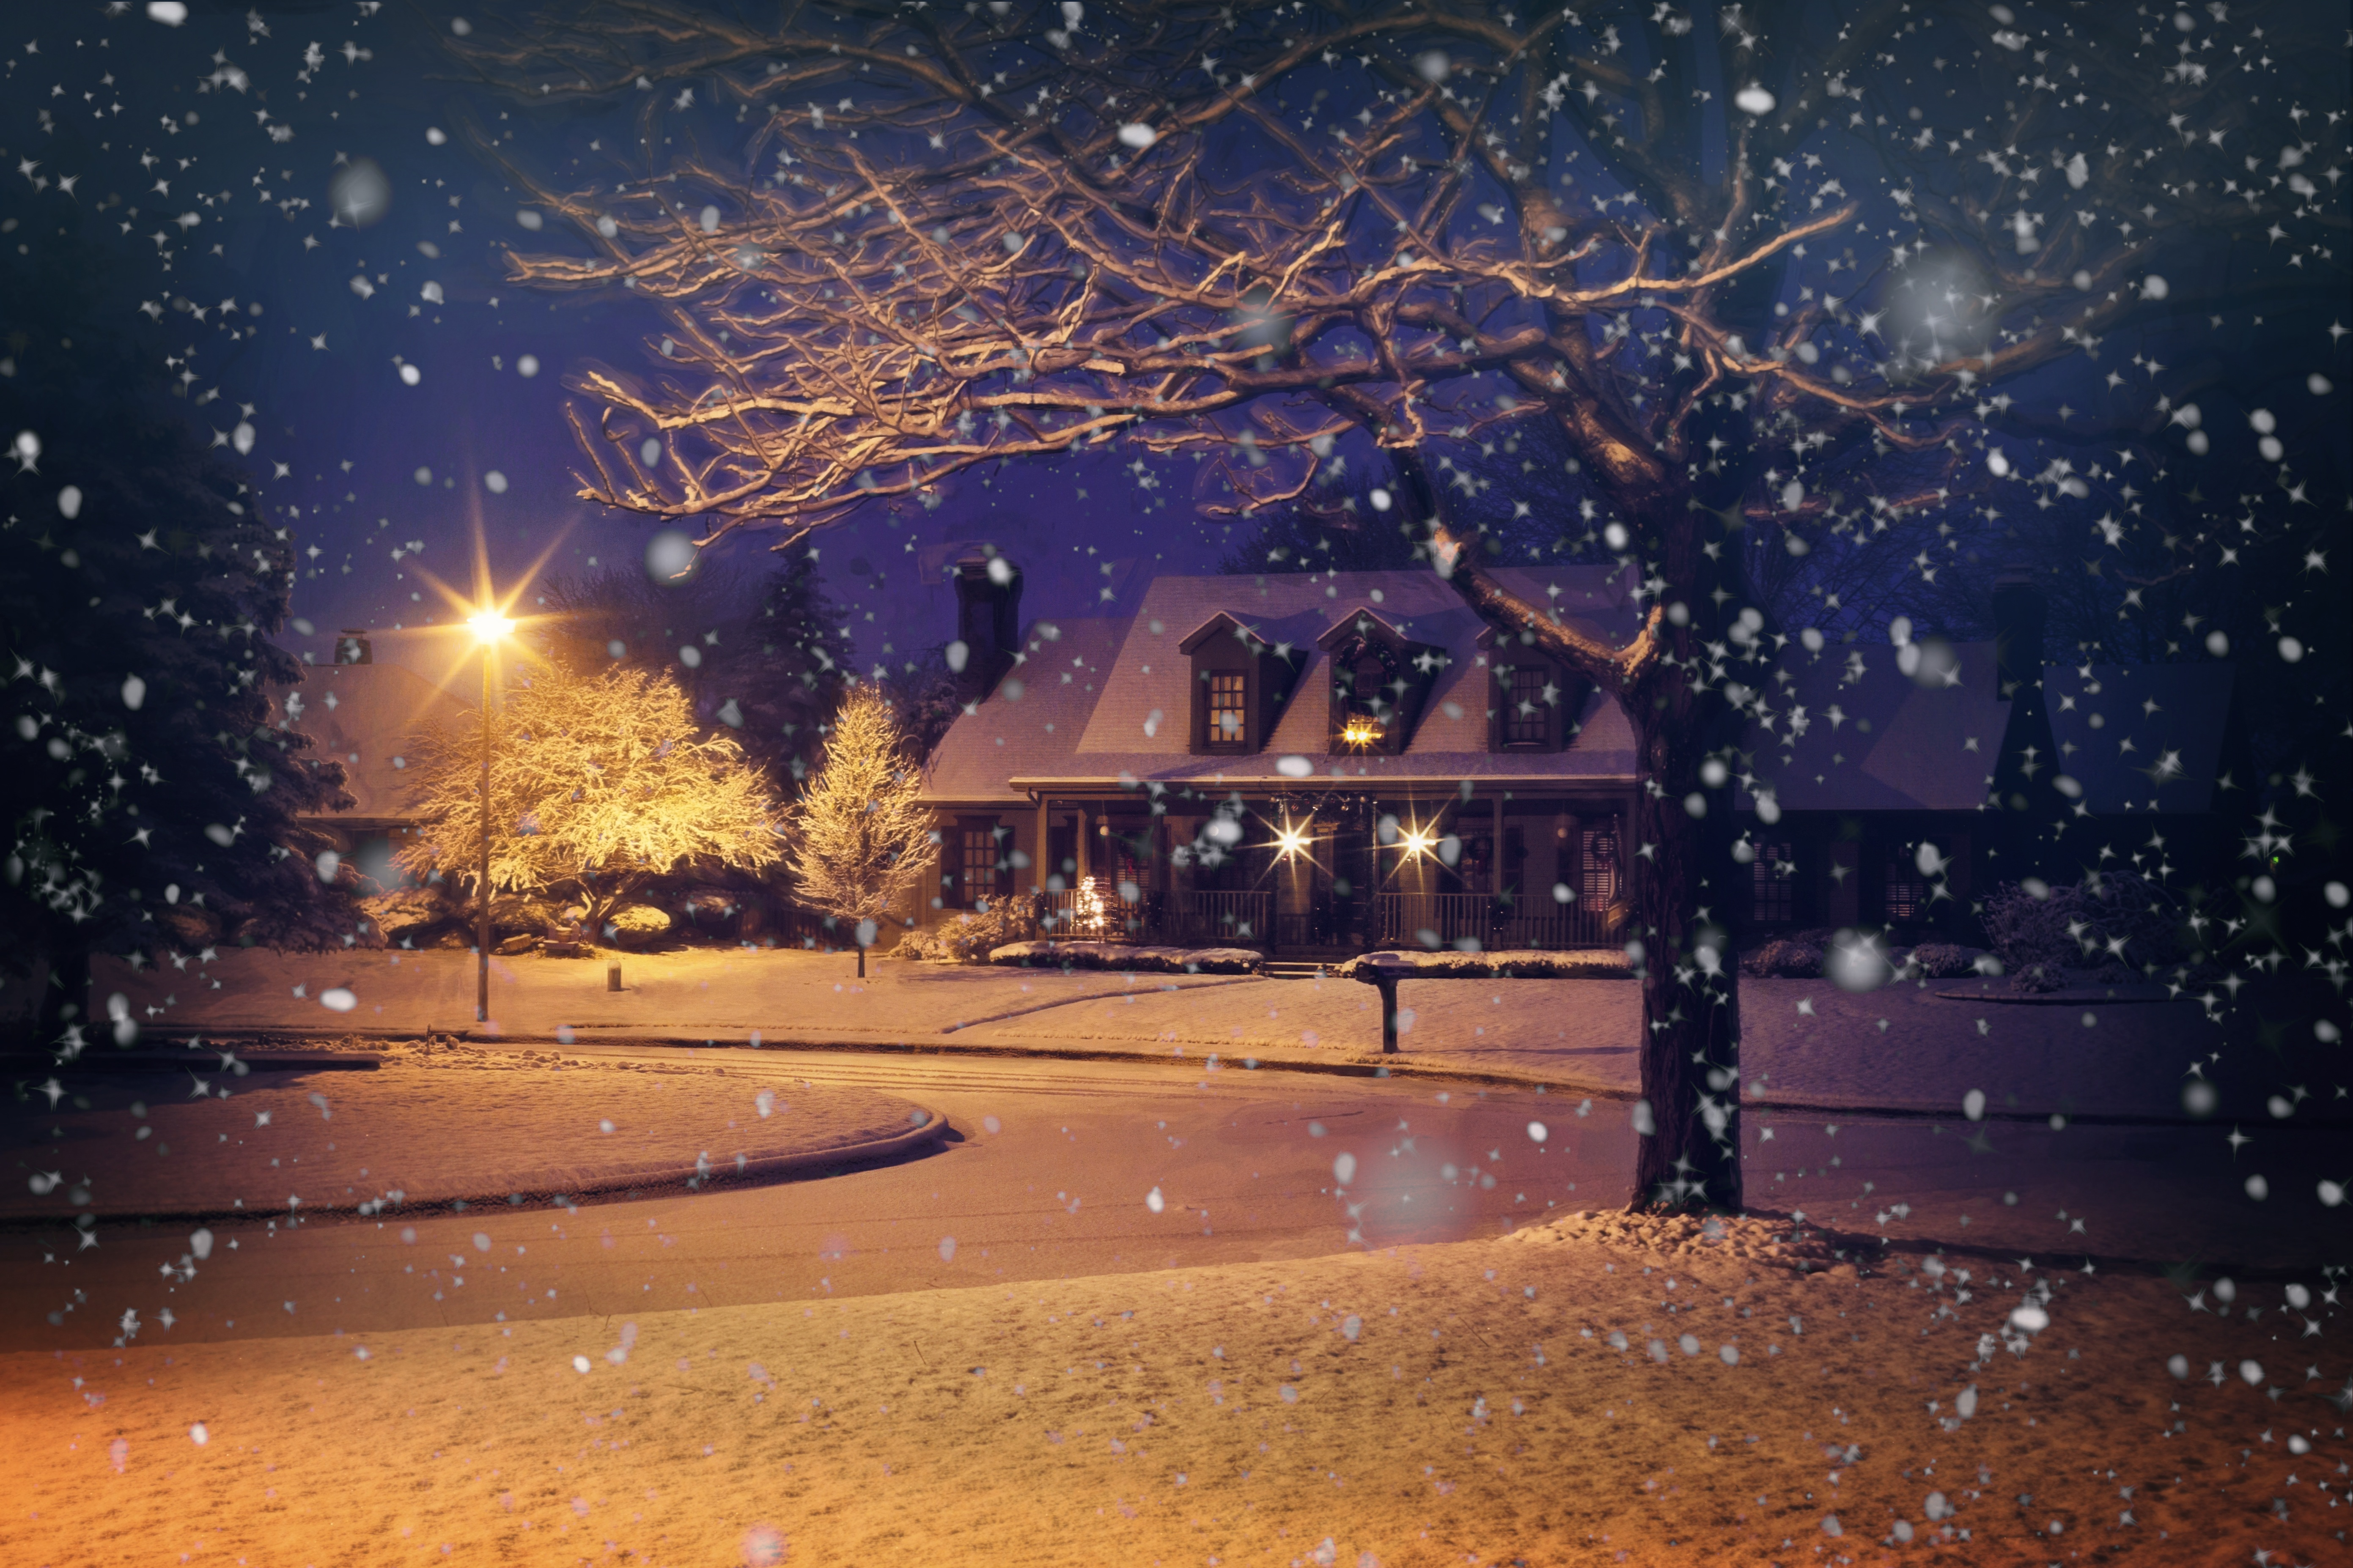 Falling Snow Wallpaper Iphone Winter Pictures 183 Pexels 183 Free Stock Photos